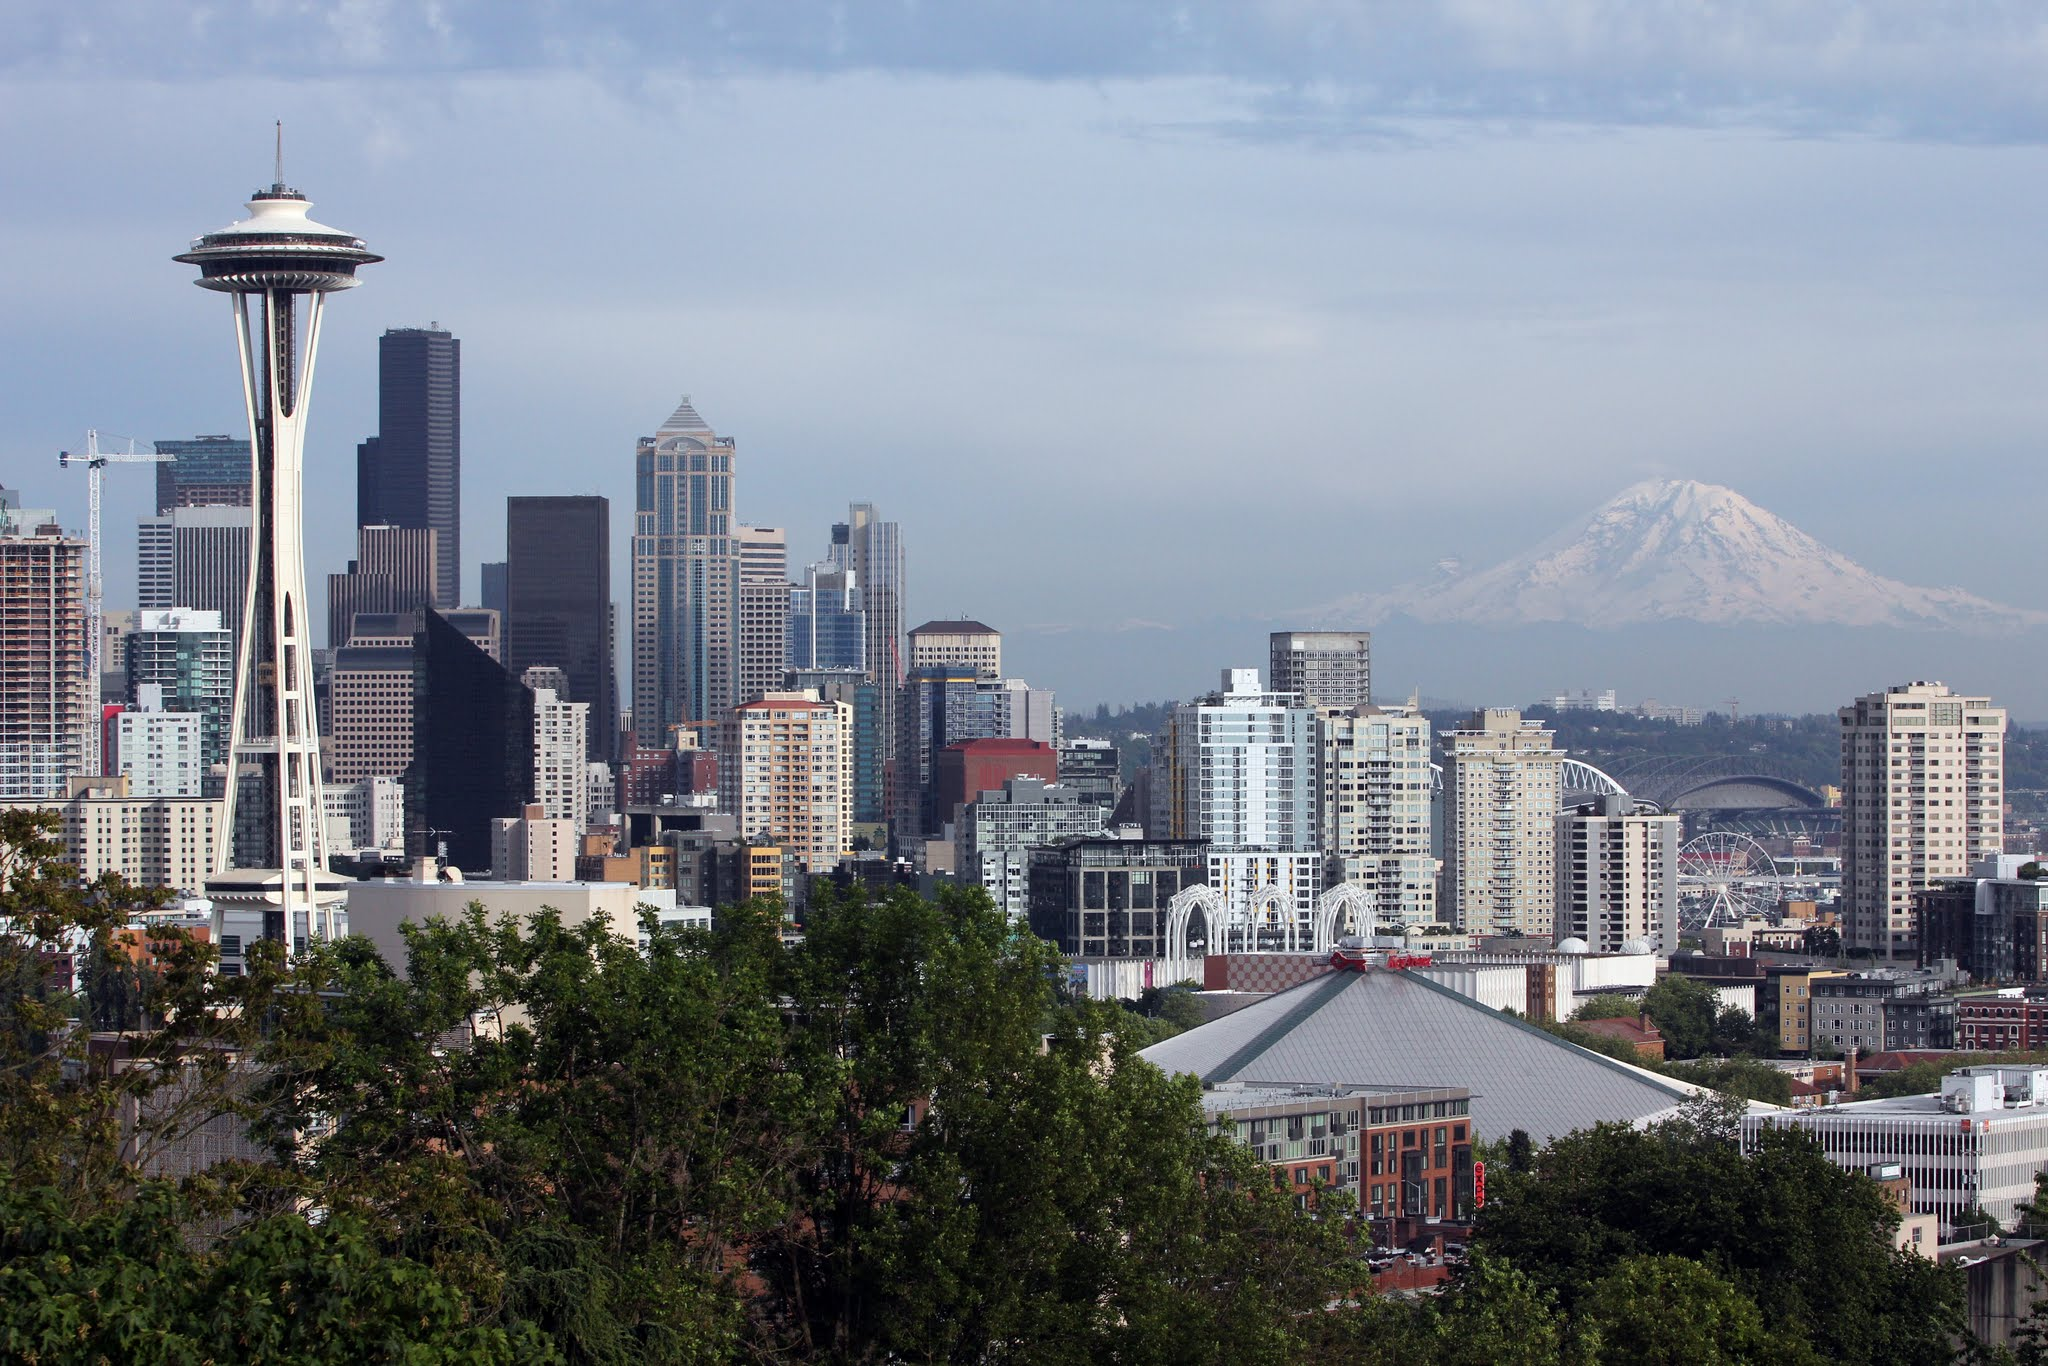 Best Downtown Seattle View- Kerry Park